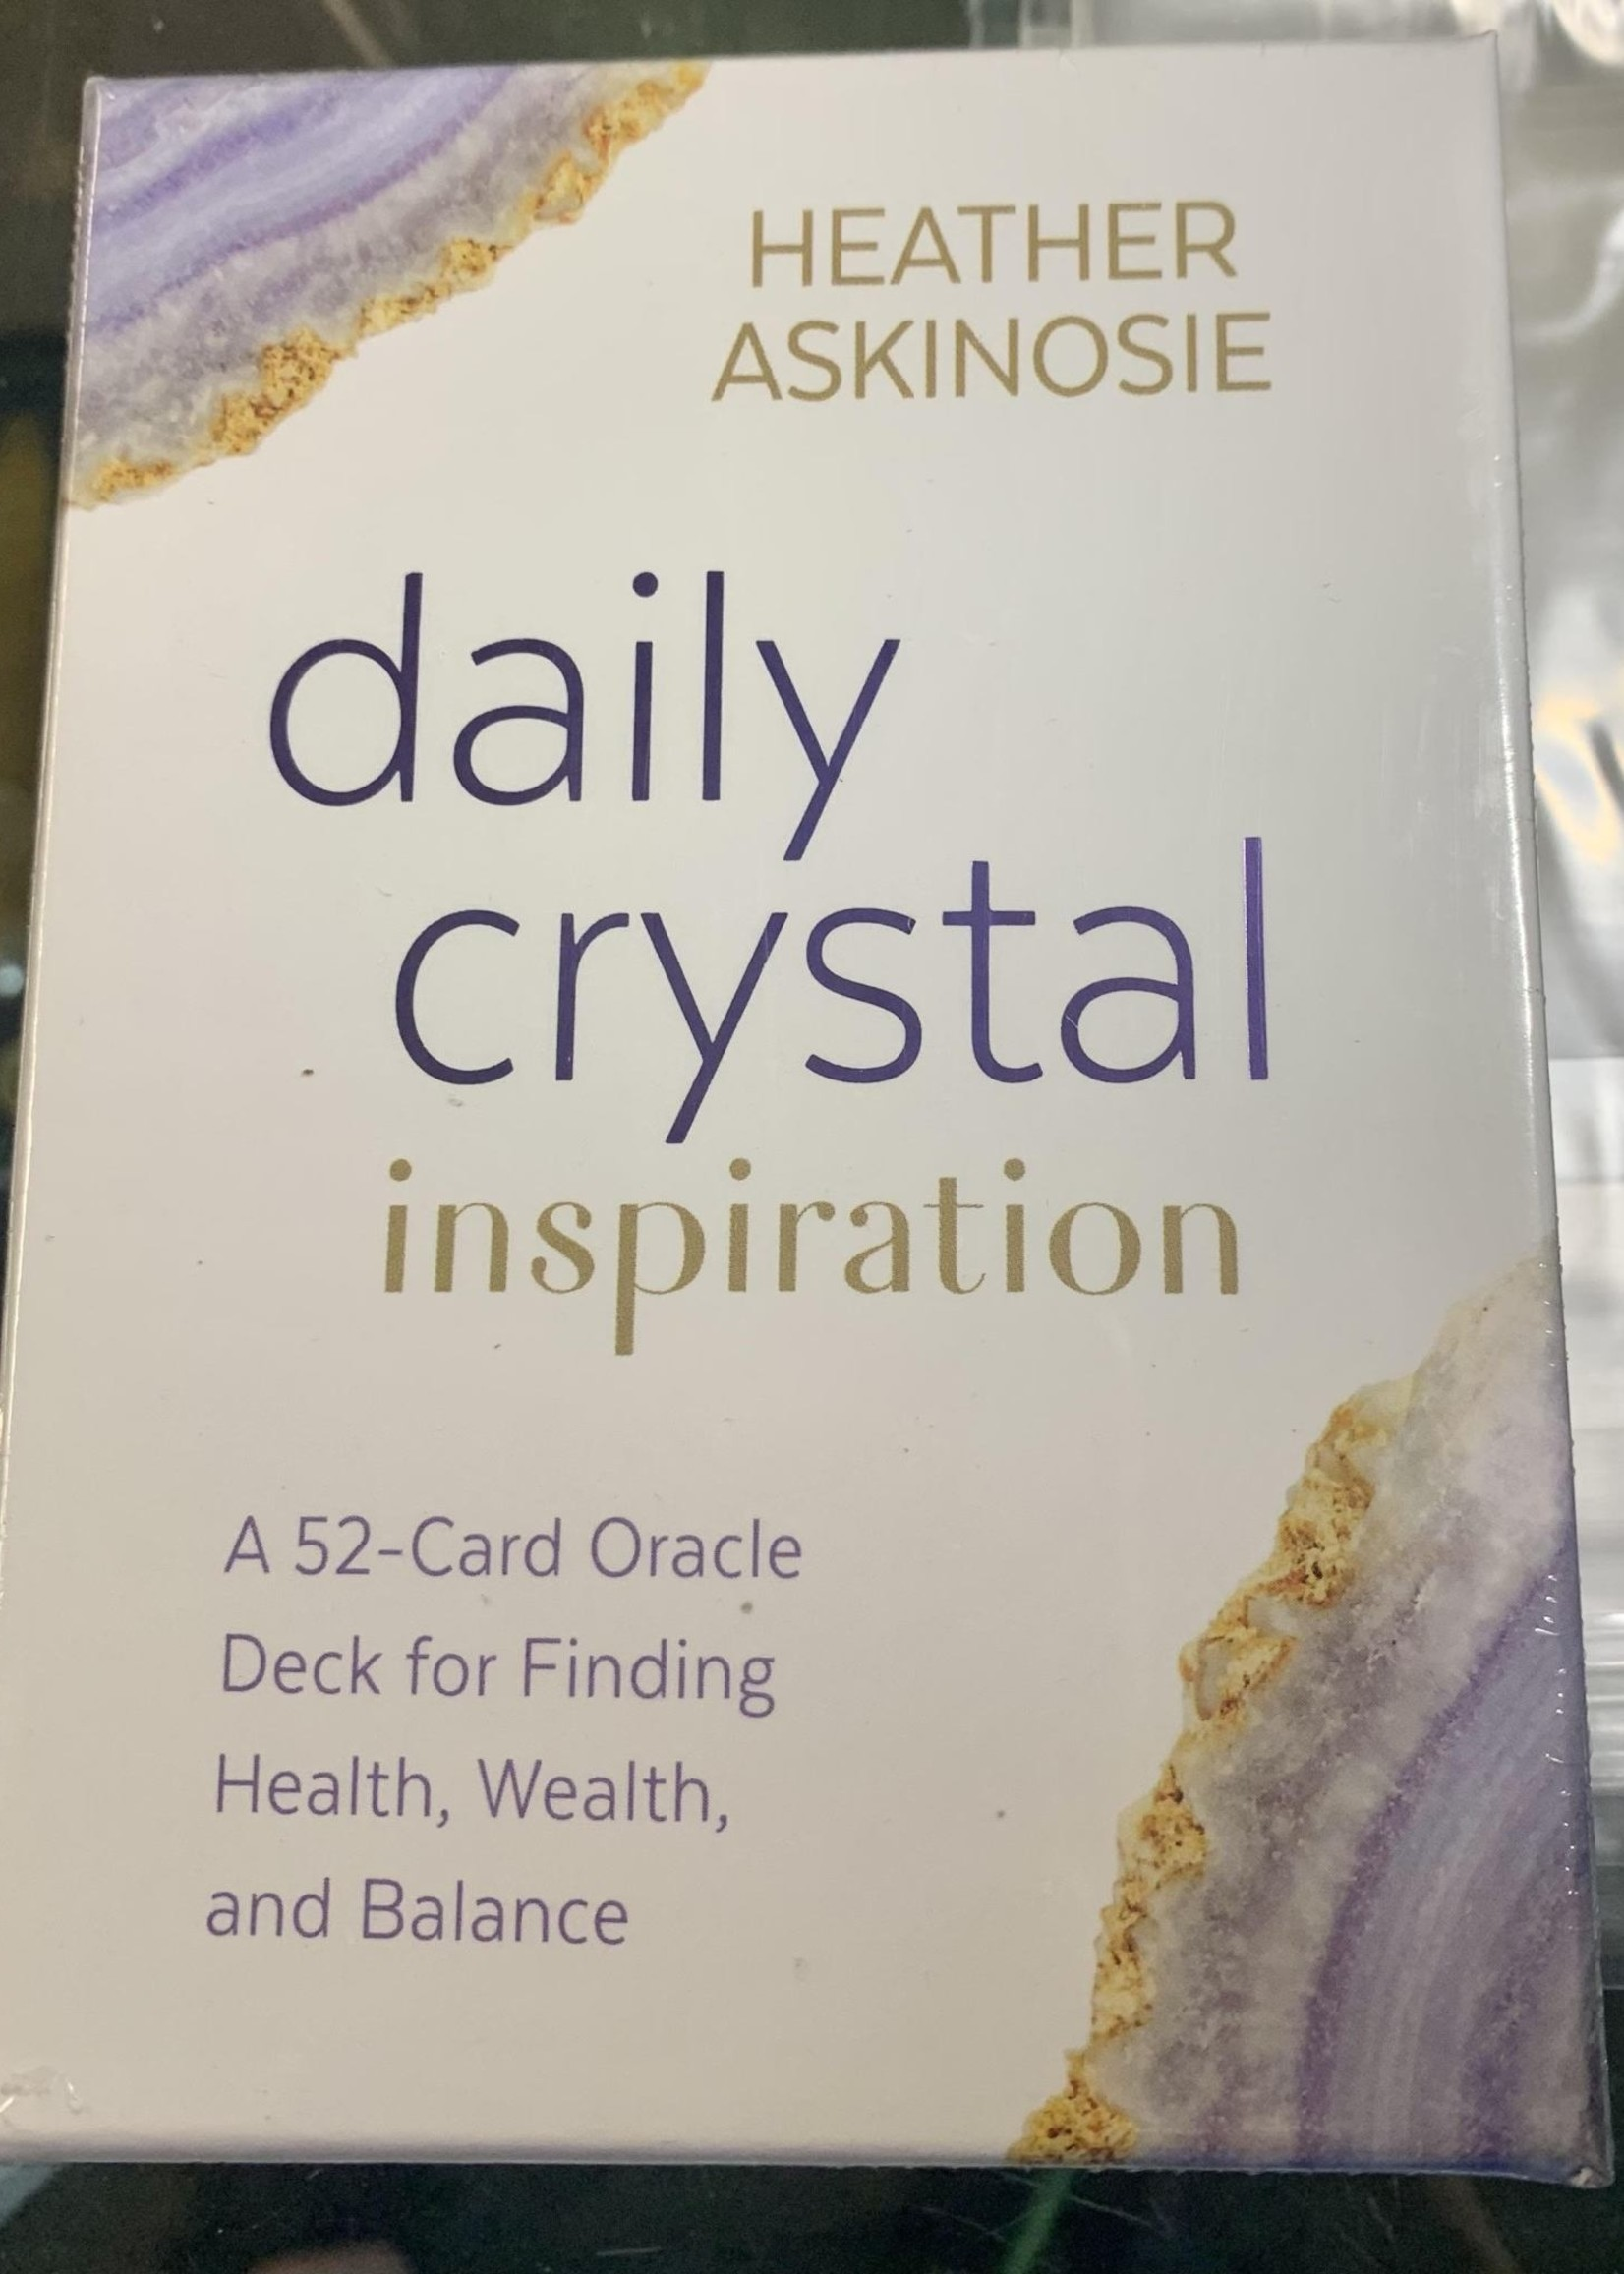 Daily Crystal Inspiration